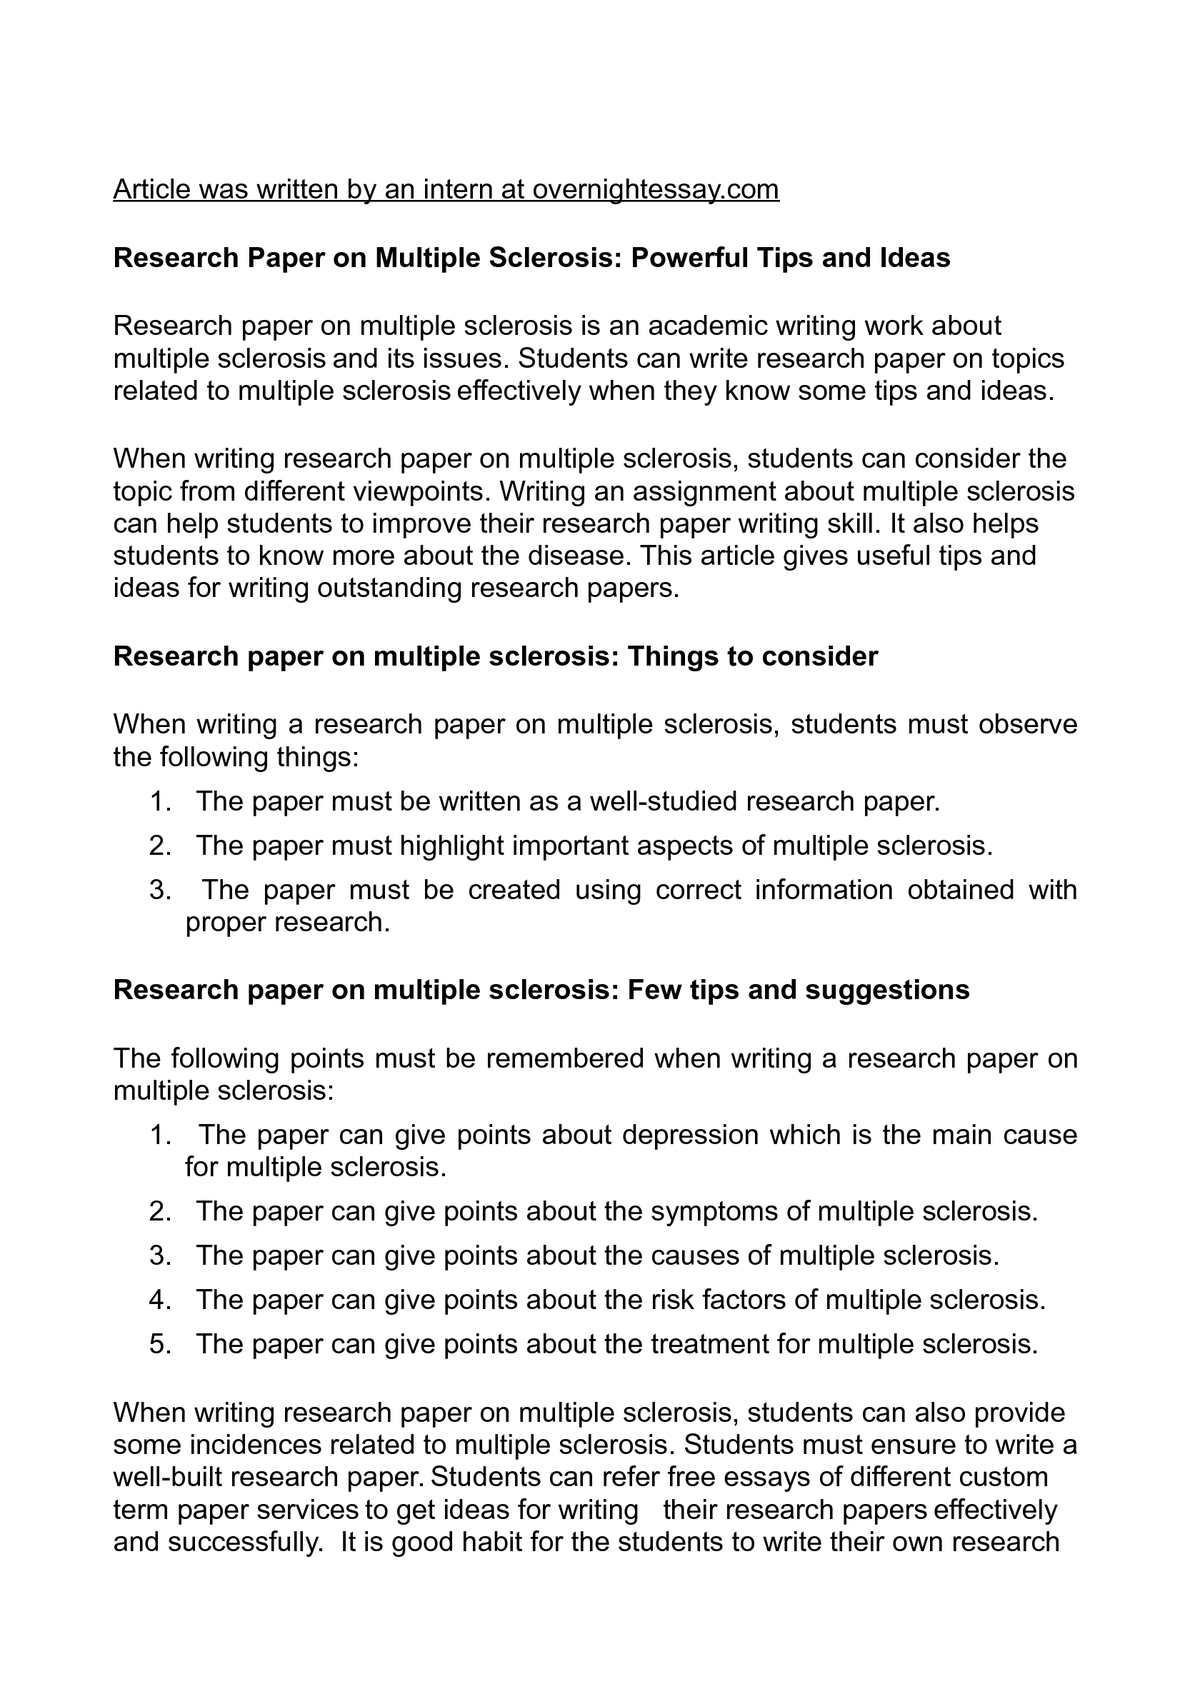 015 Research Paper How To Write Breathtaking A Conclusion For Mla An Abstract Examples Introduction Full